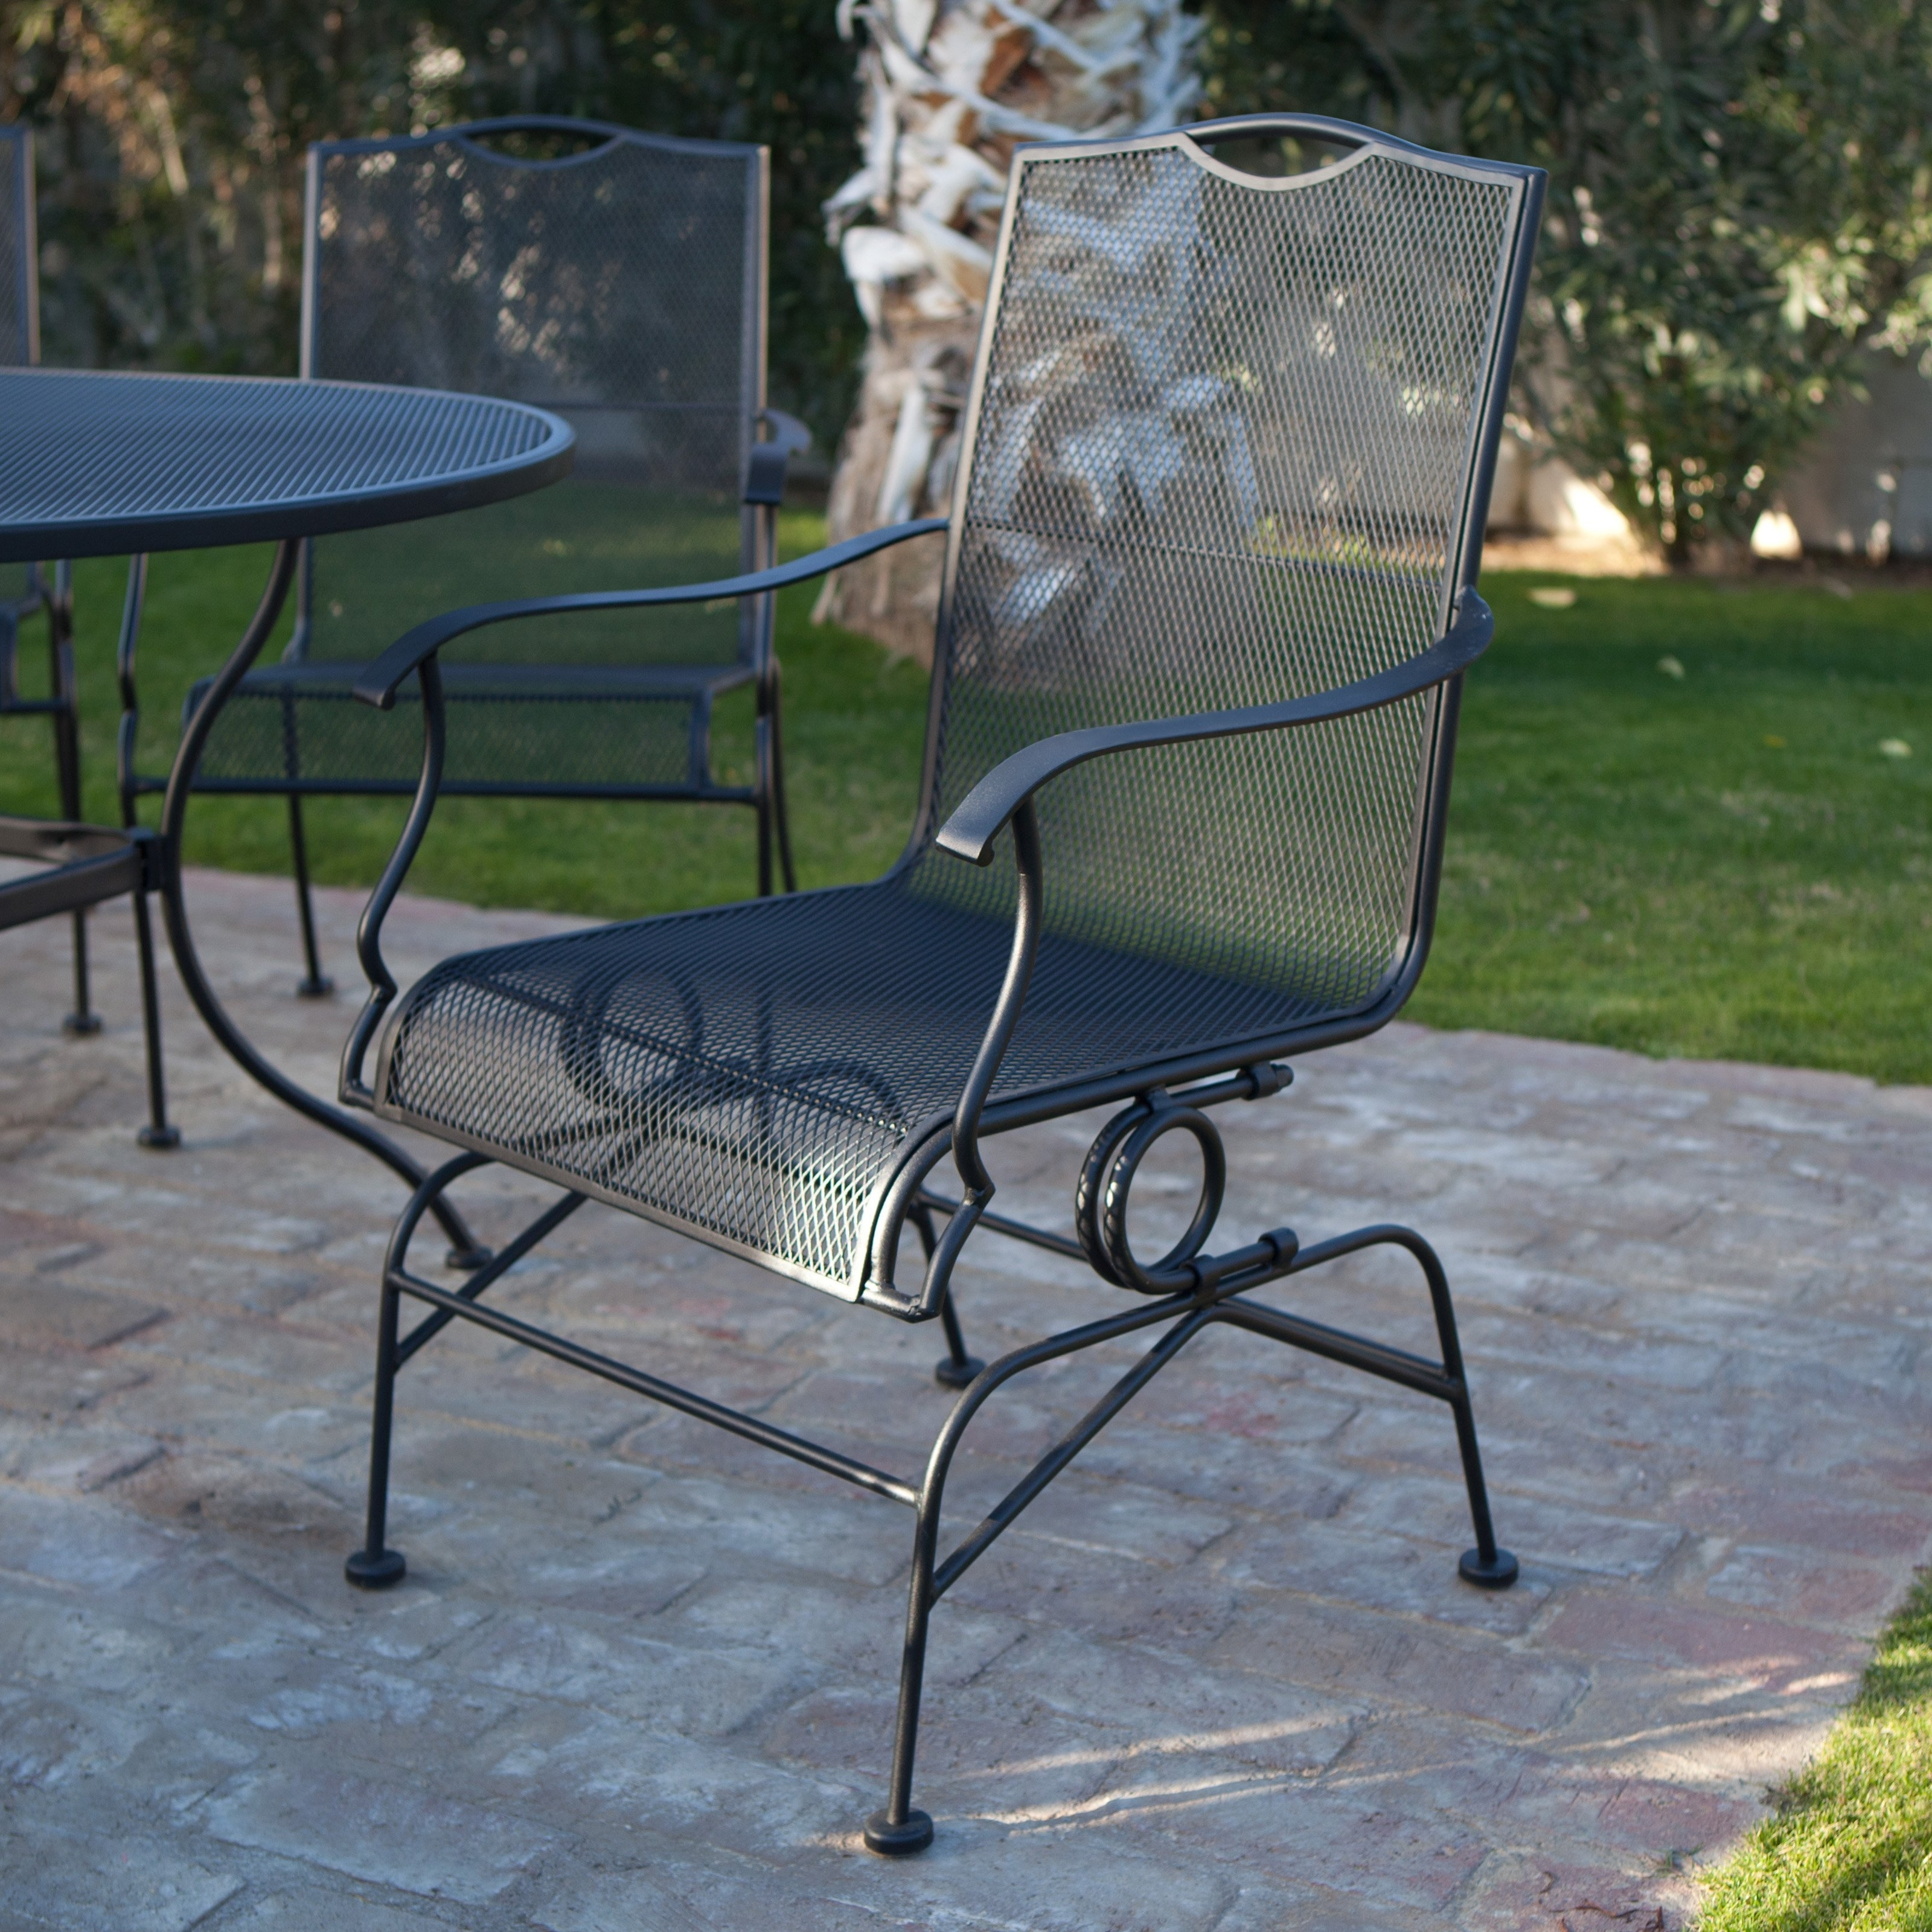 Trendy Lawn Furniture Near Me 38 Deck Outdoor Table And Chairs Regarding Most Current Wrought Iron Patio Rocking Chairs (View 18 of 20)